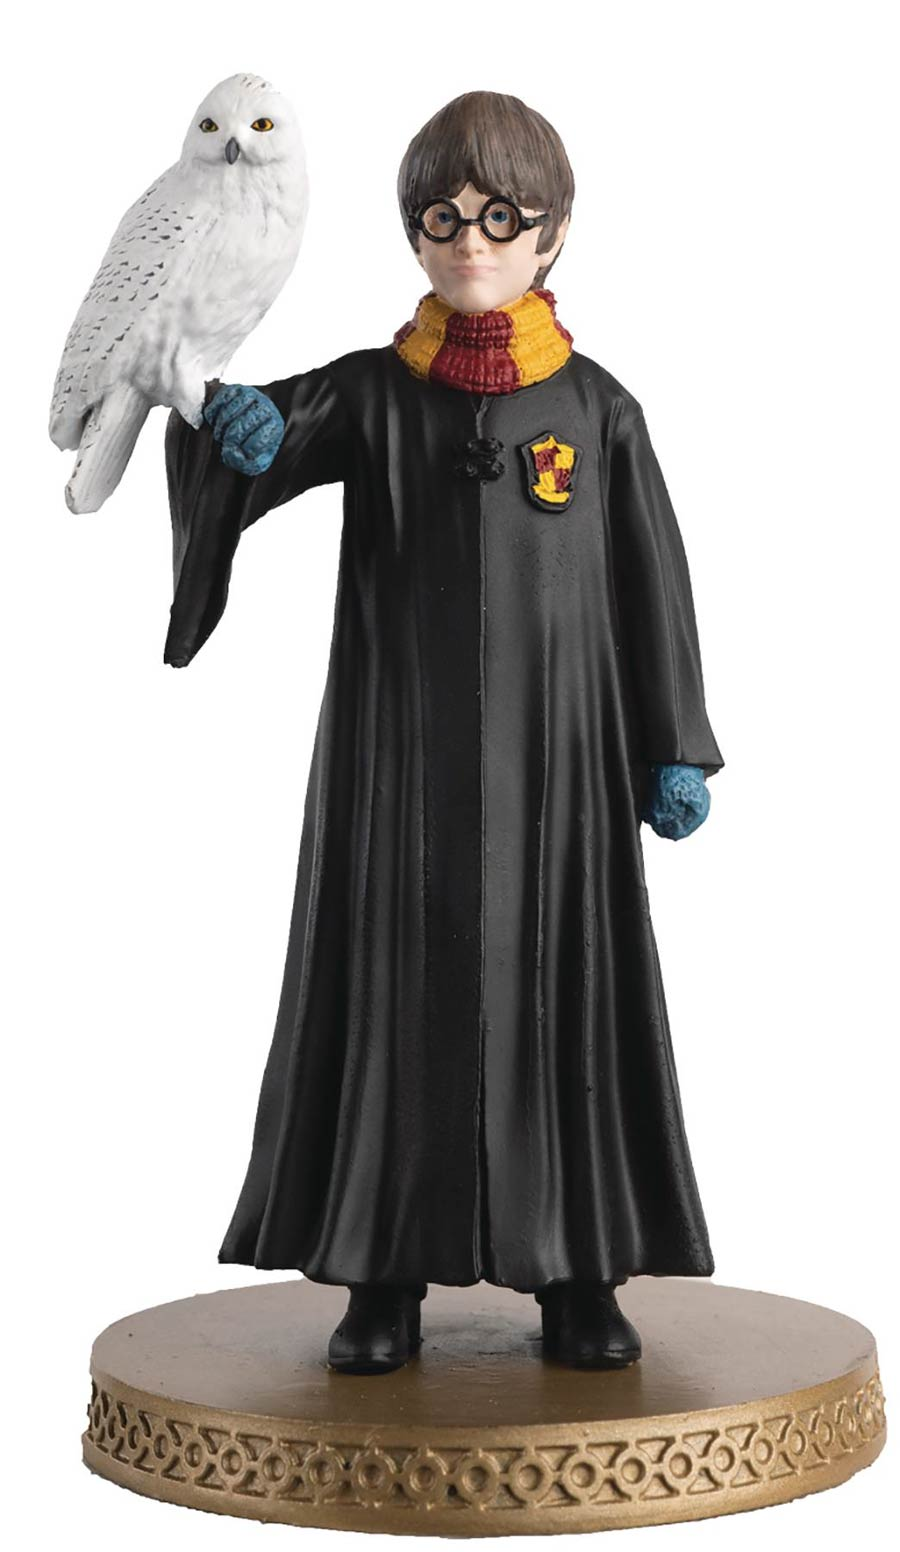 Wizarding World Figurine Collection - Harry Potter With Hedwig